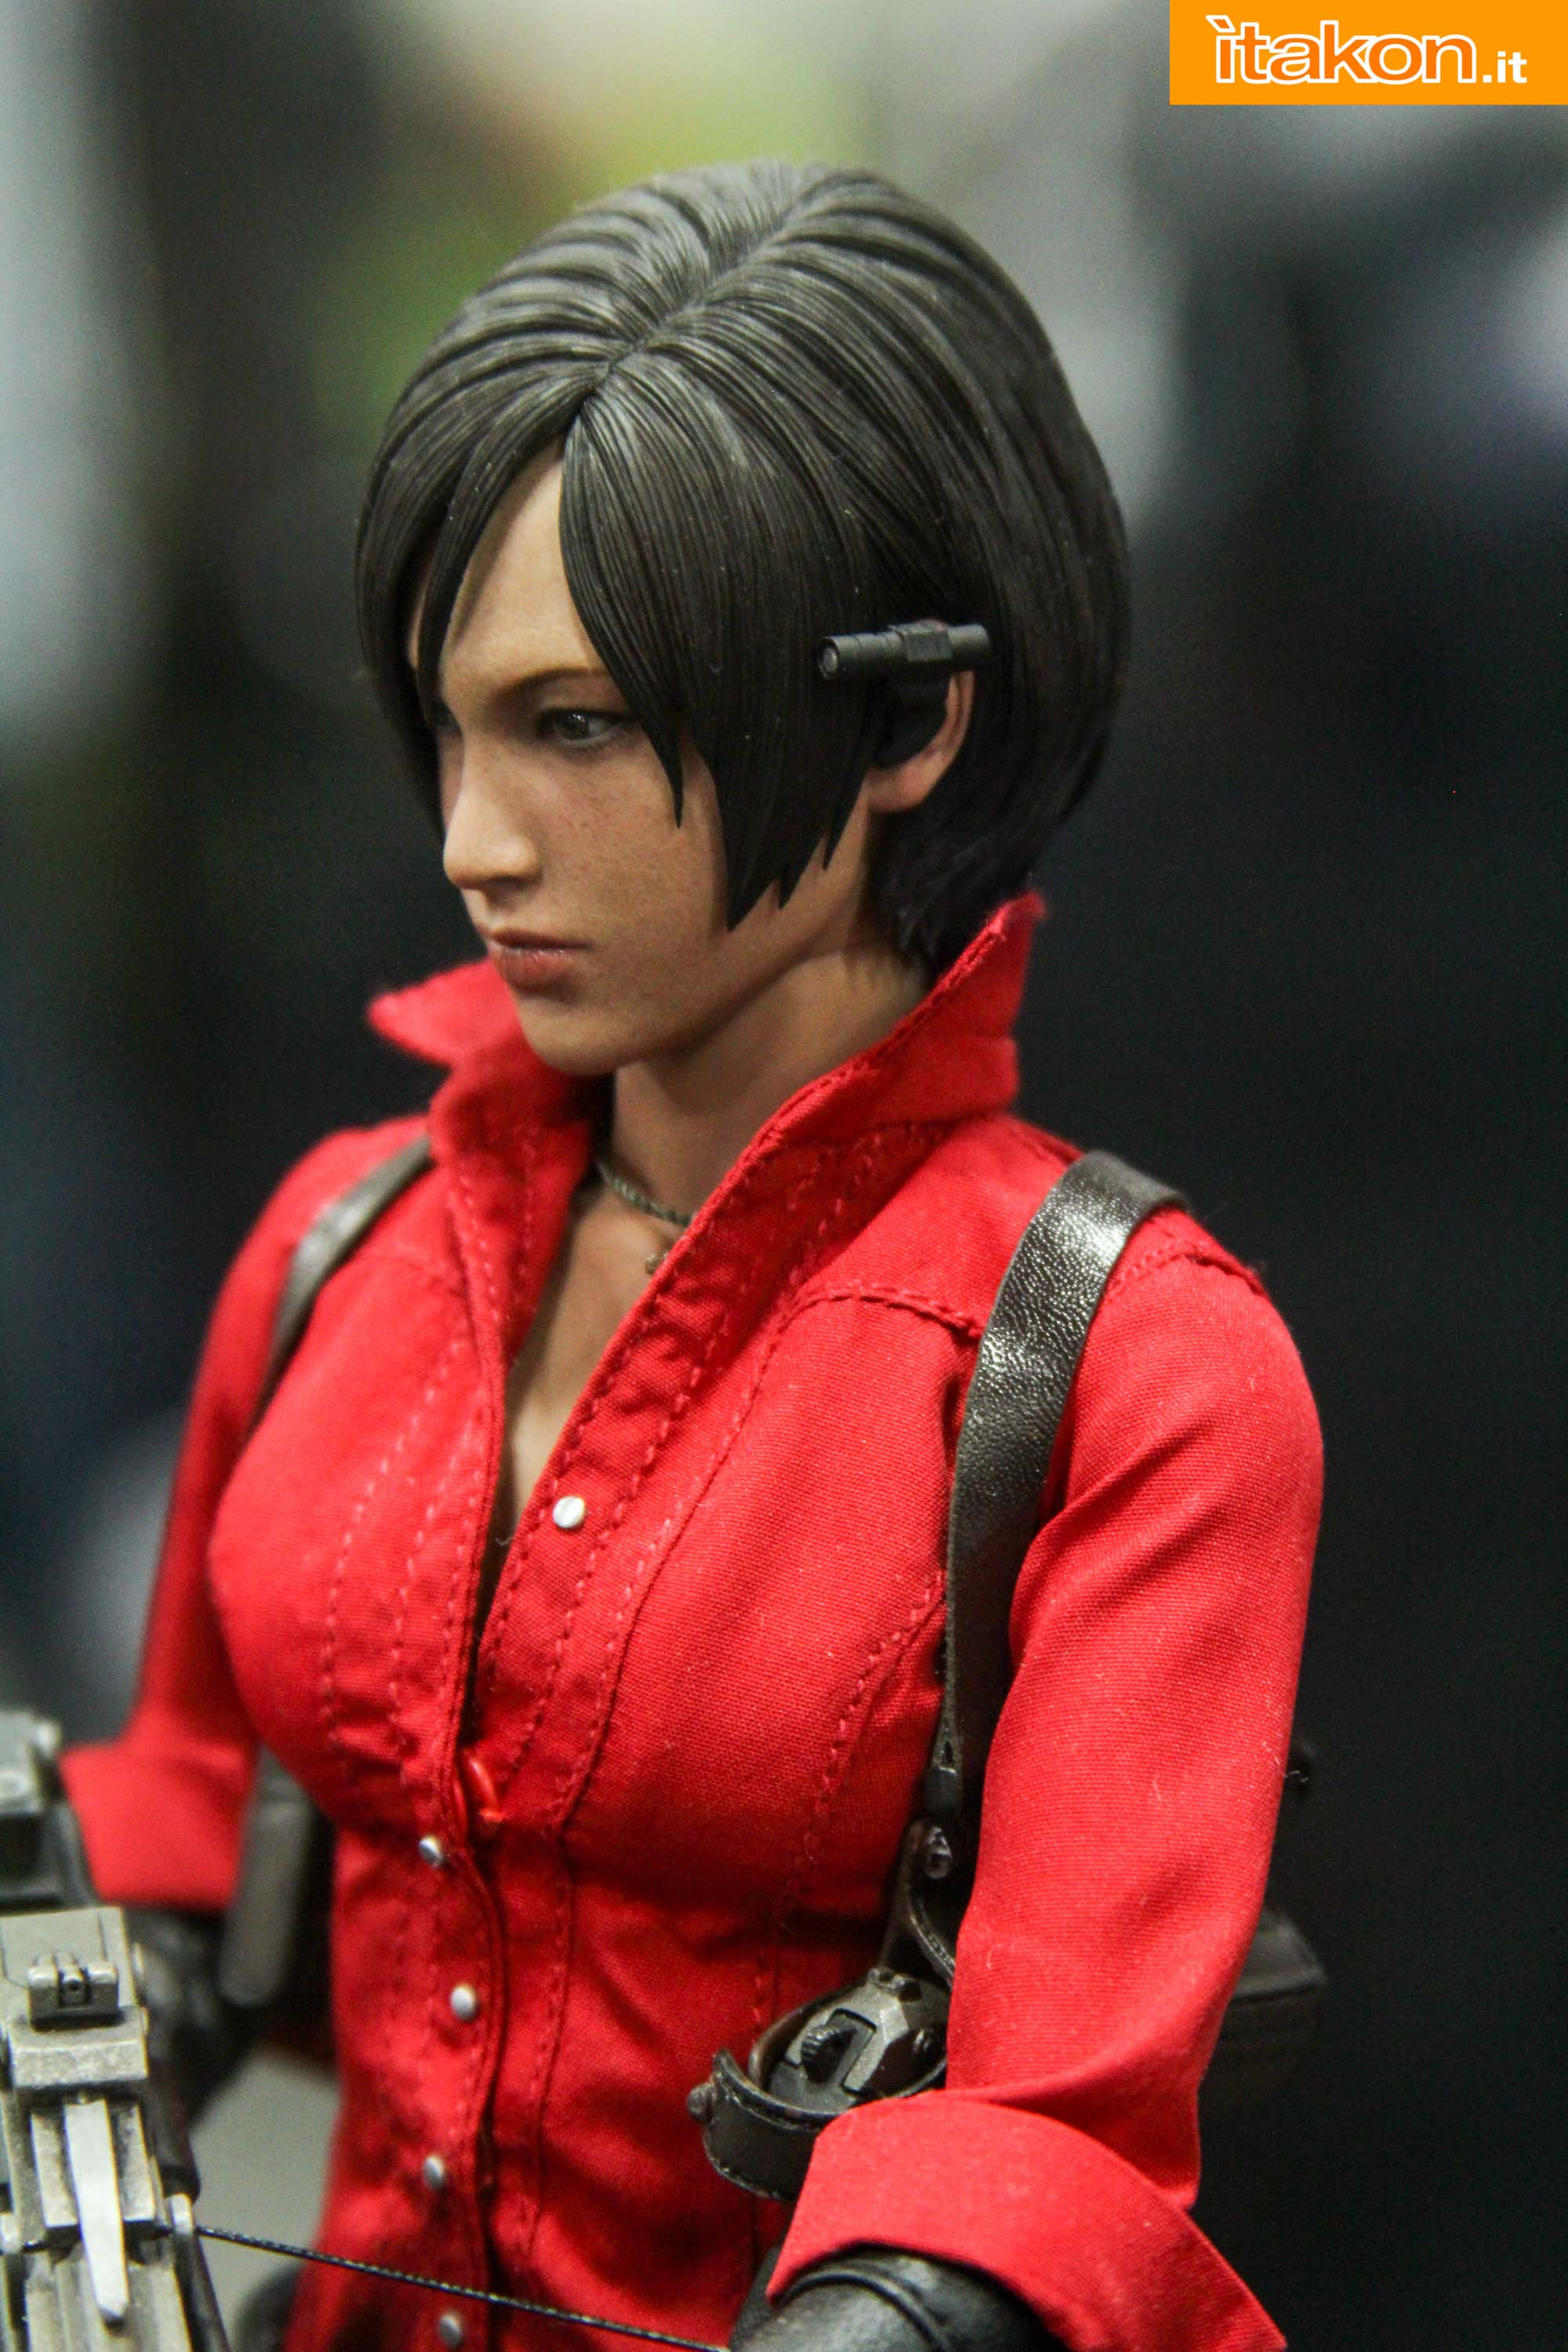 http://i2.wp.com/itakon.it/wp-content/uploads/2015/07/hot-toys-resident-evil-metal-gear-sdcc-2015-27.jpg